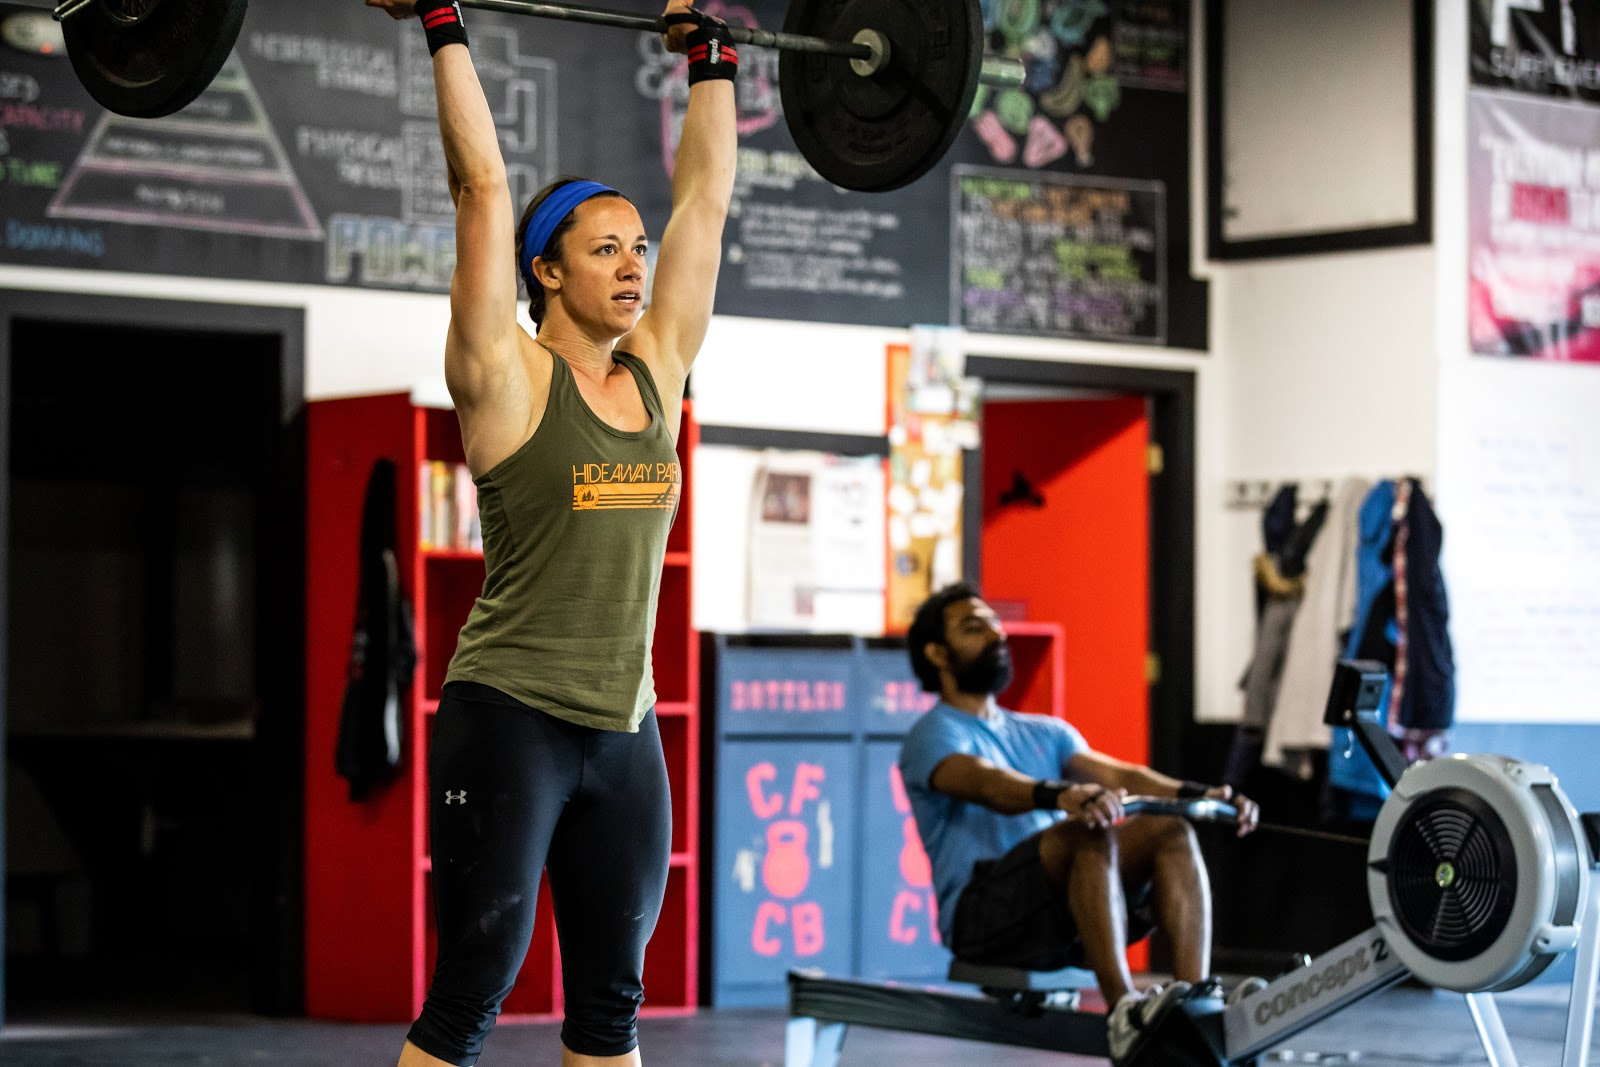 CrossFit Casco Bay - photo